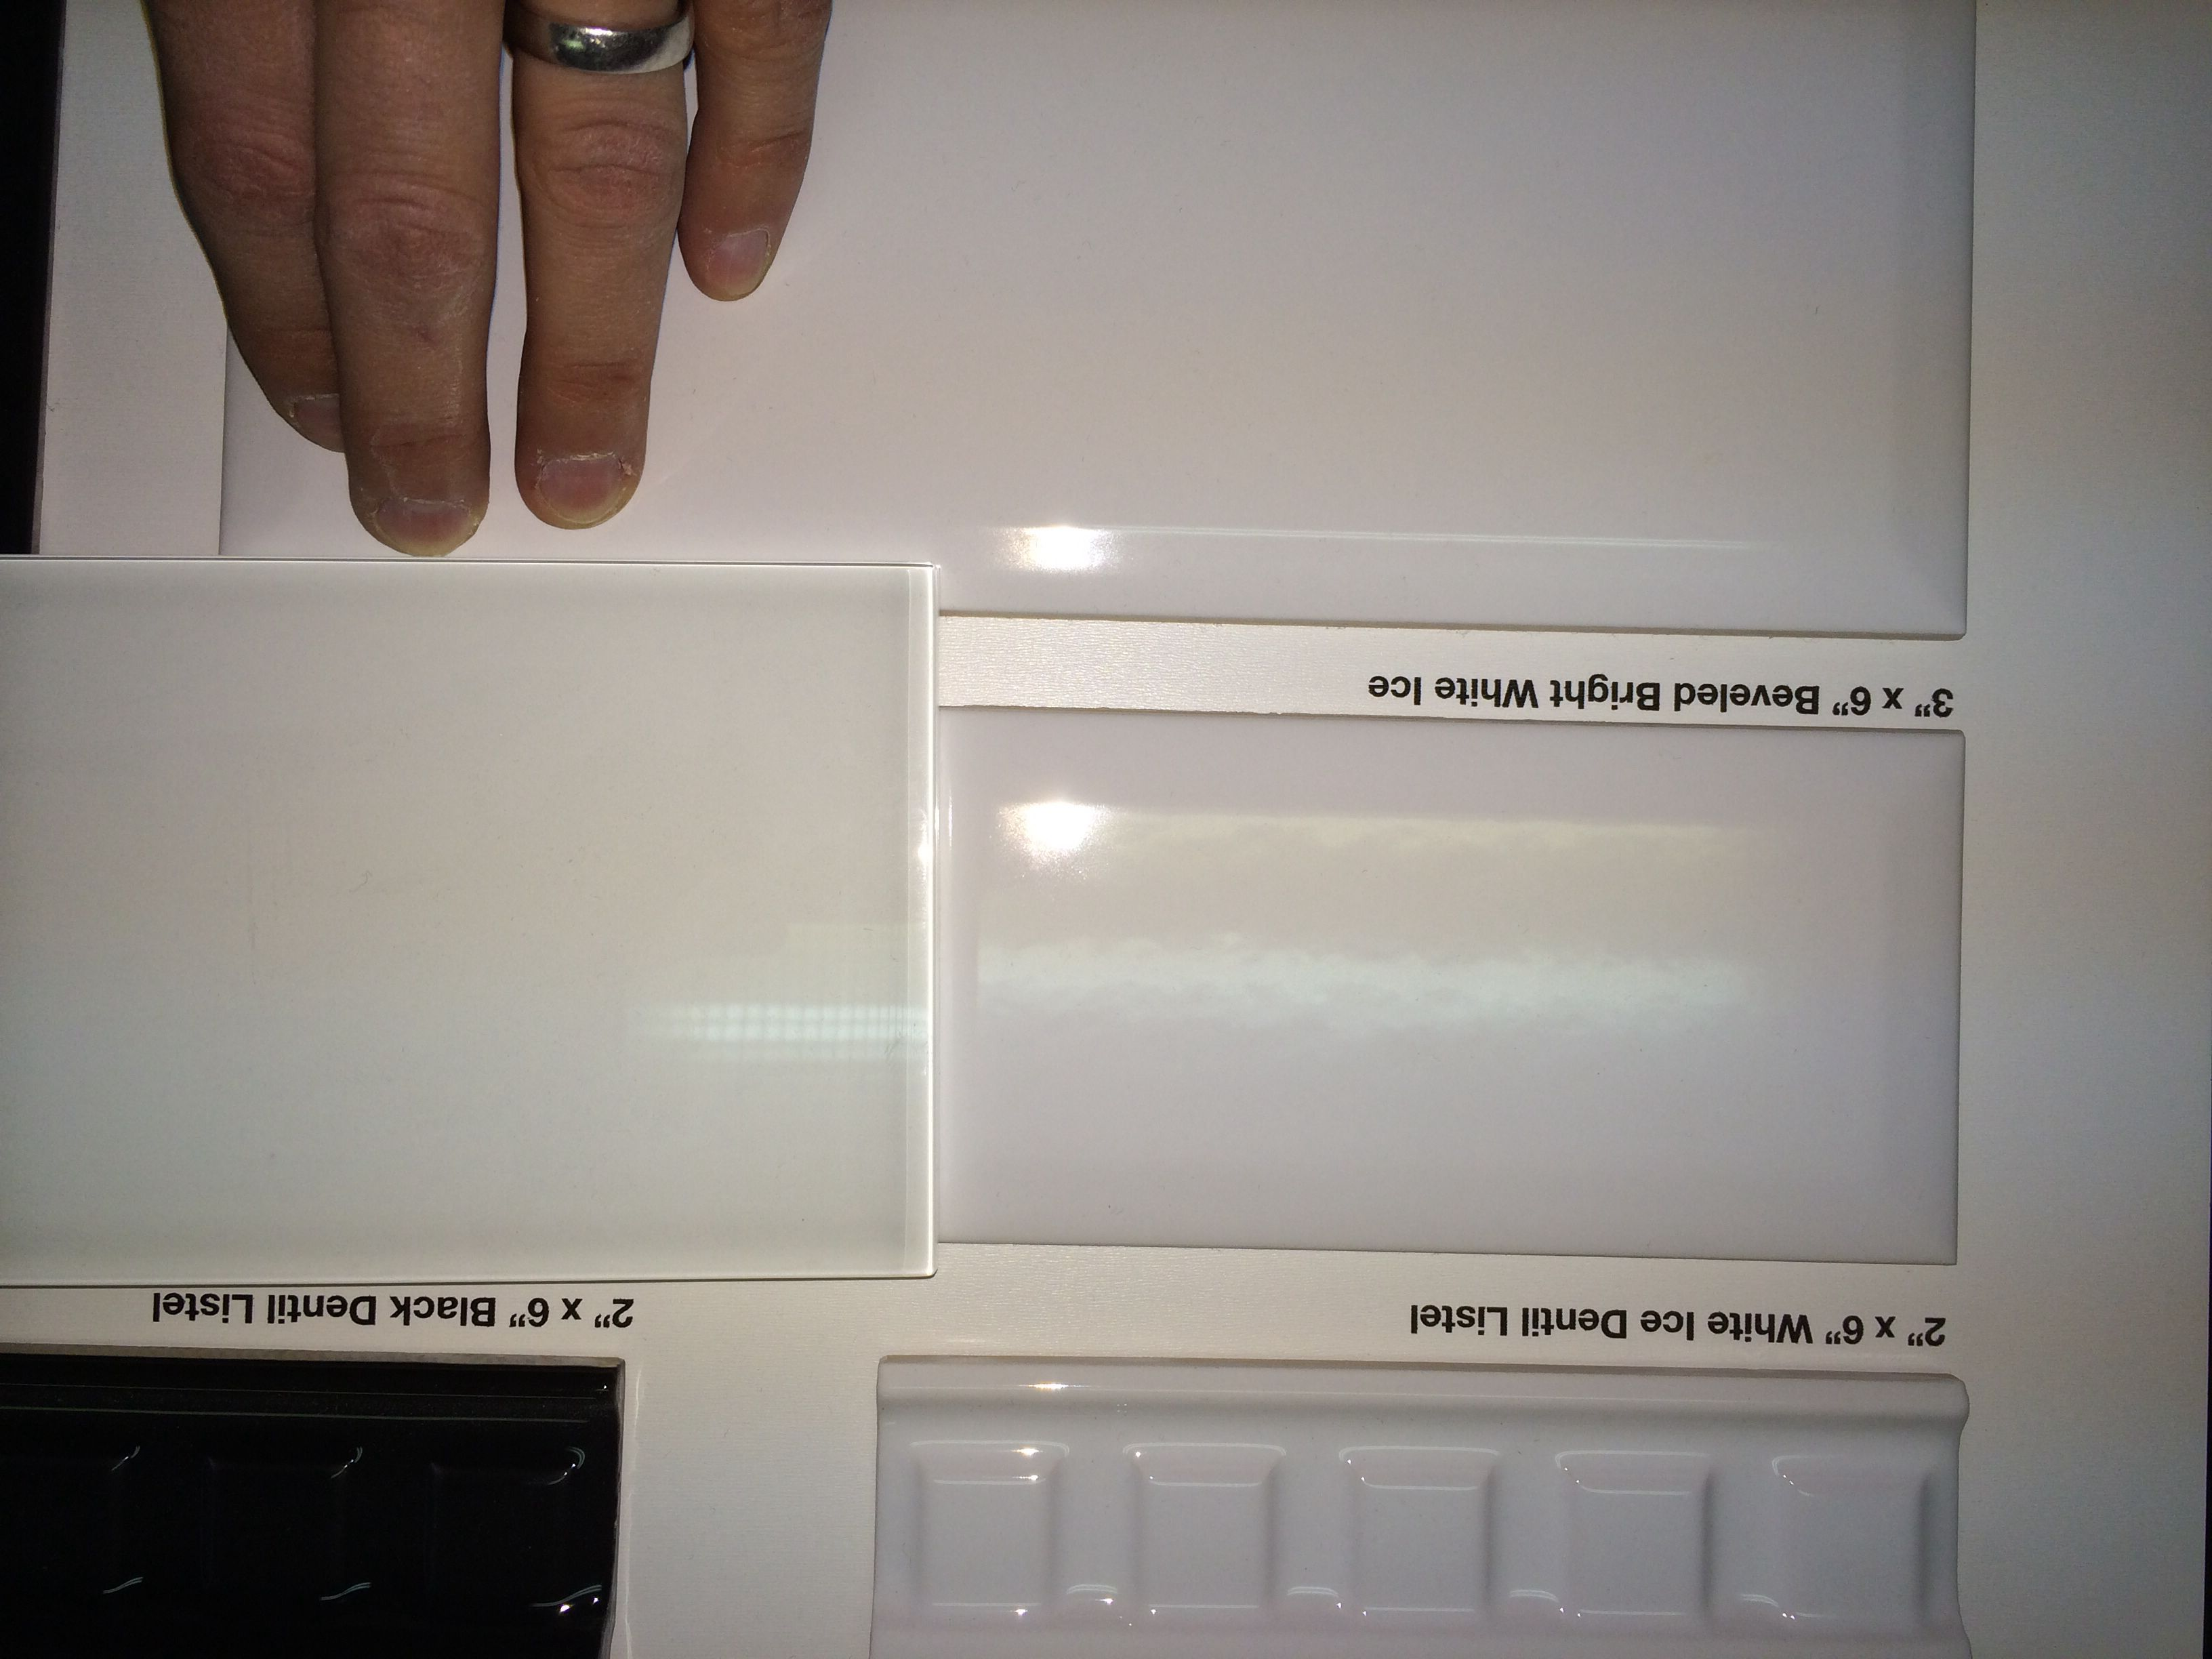 - Comparison Of Backsplash Tile Options: White Glass Tile (current